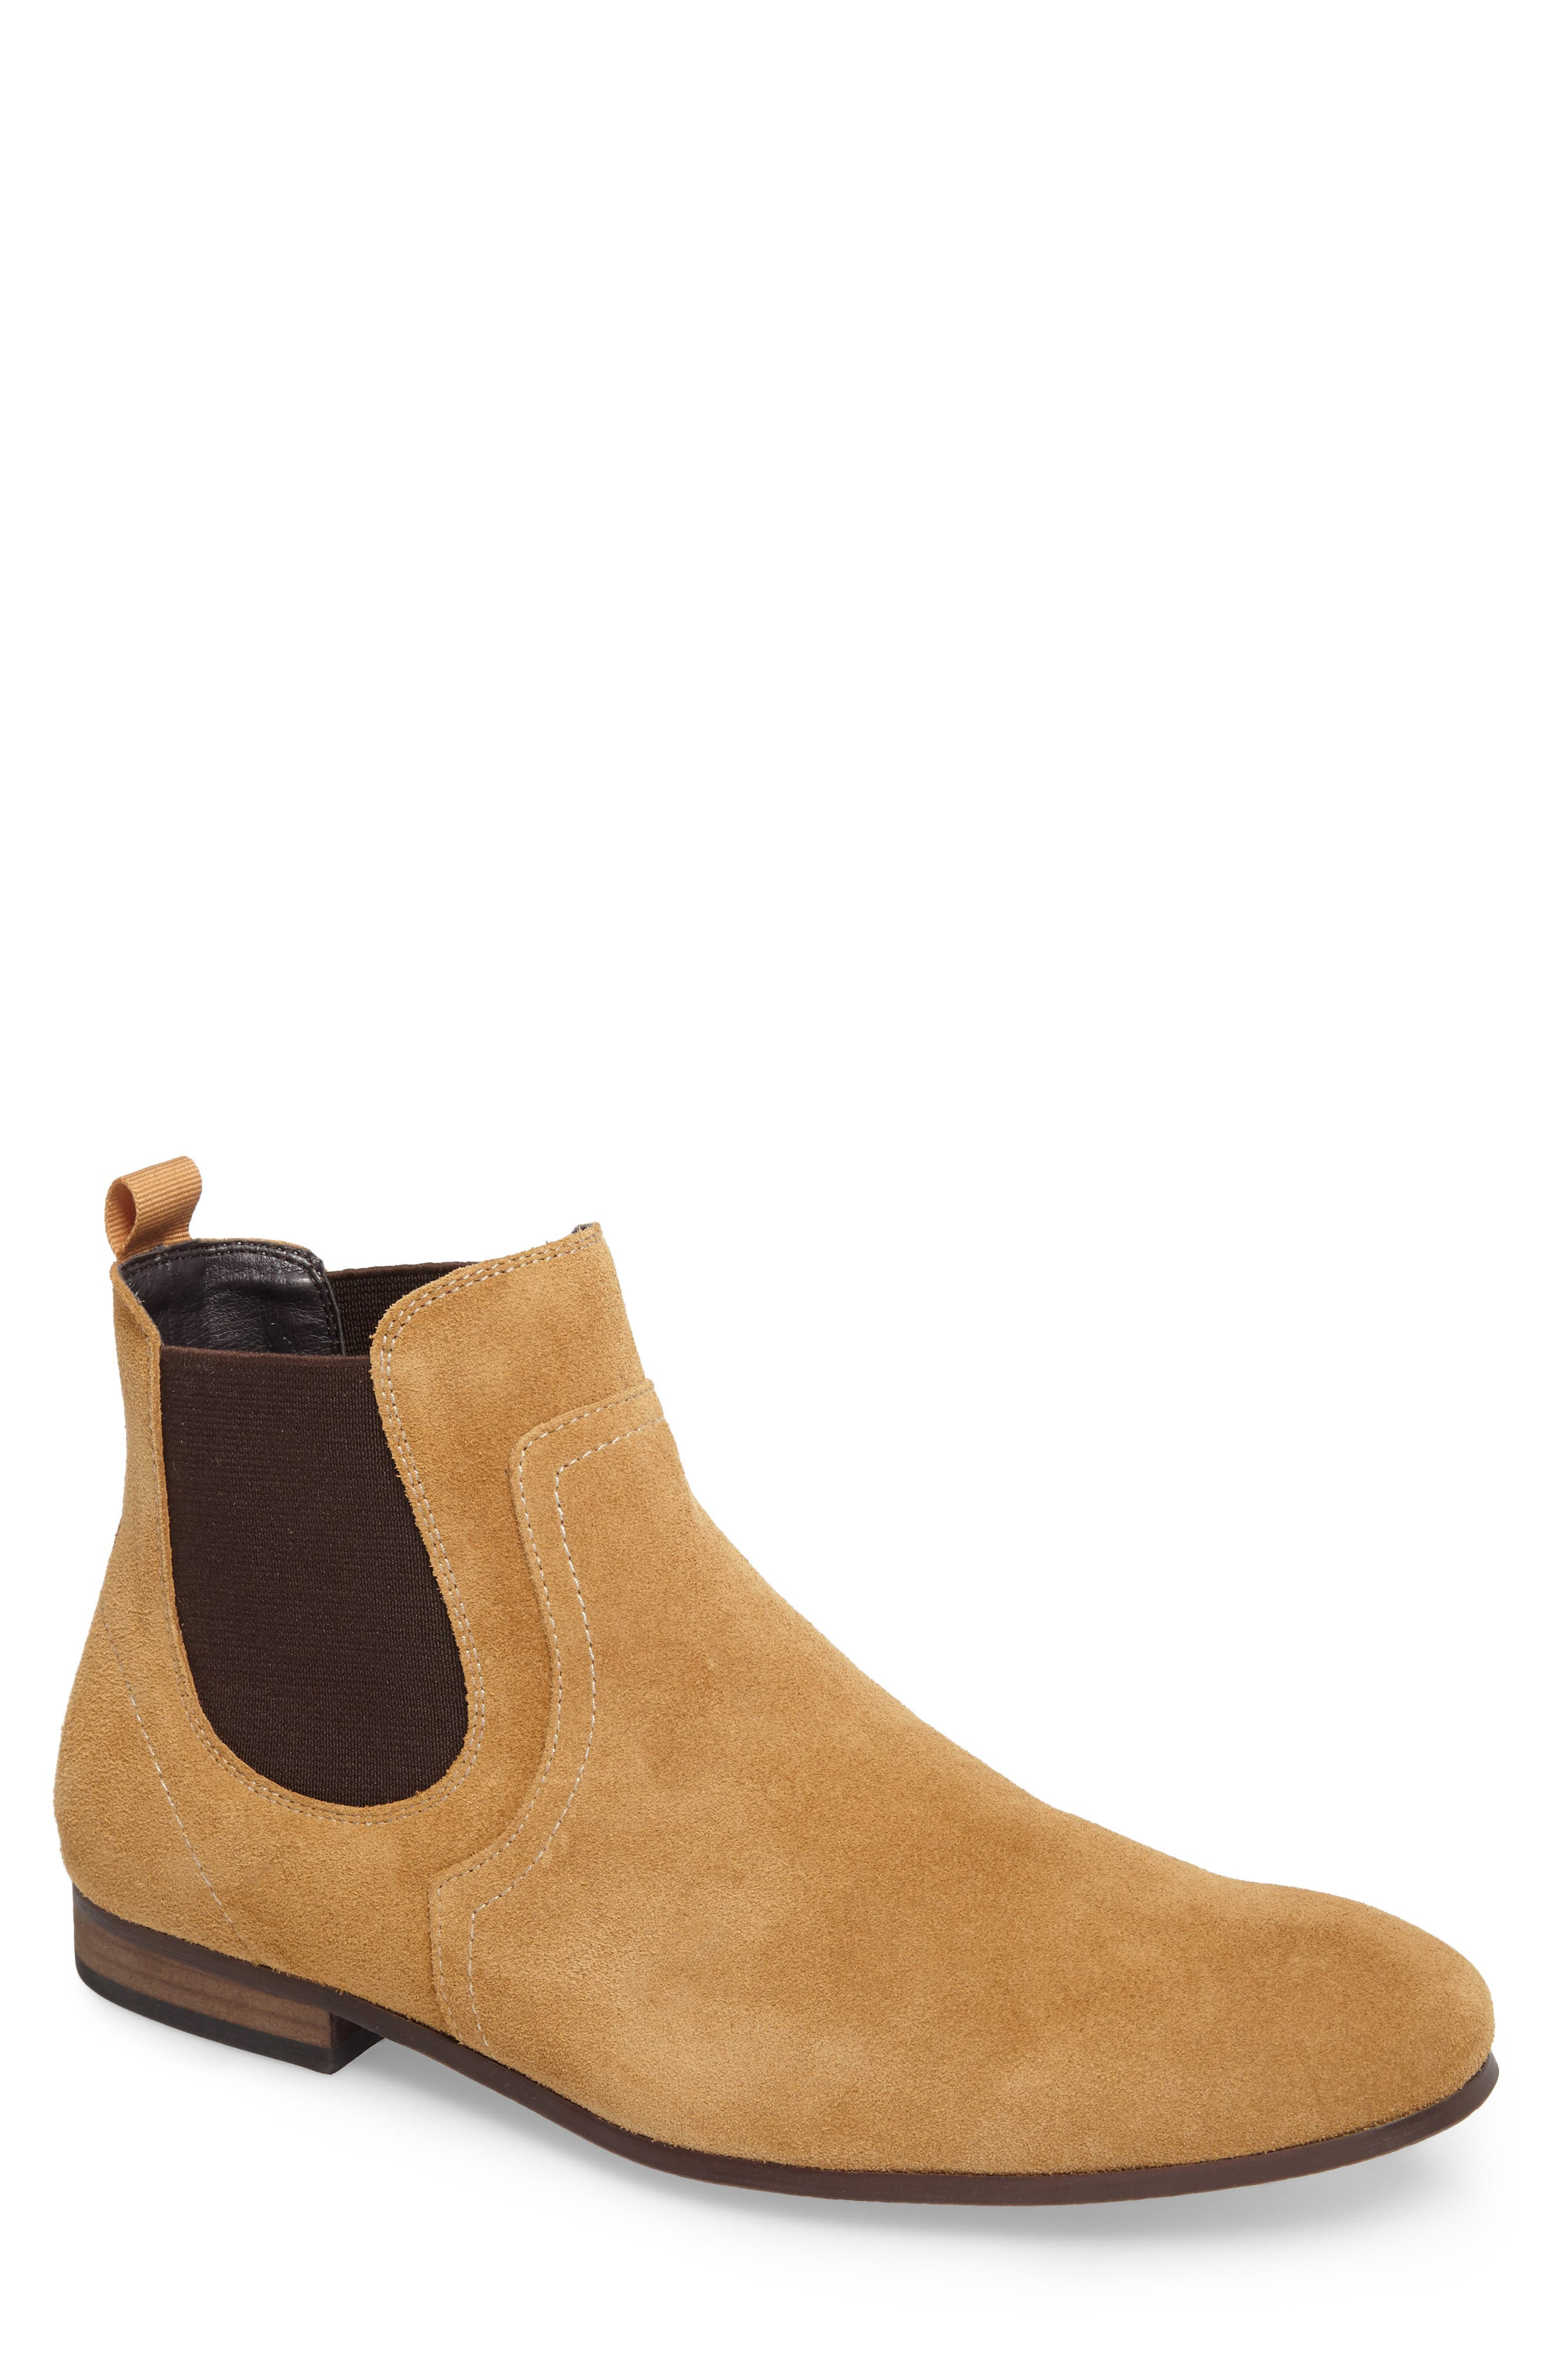 Brysen Chelsea Boot,                             Alternate thumbnail 17, color,